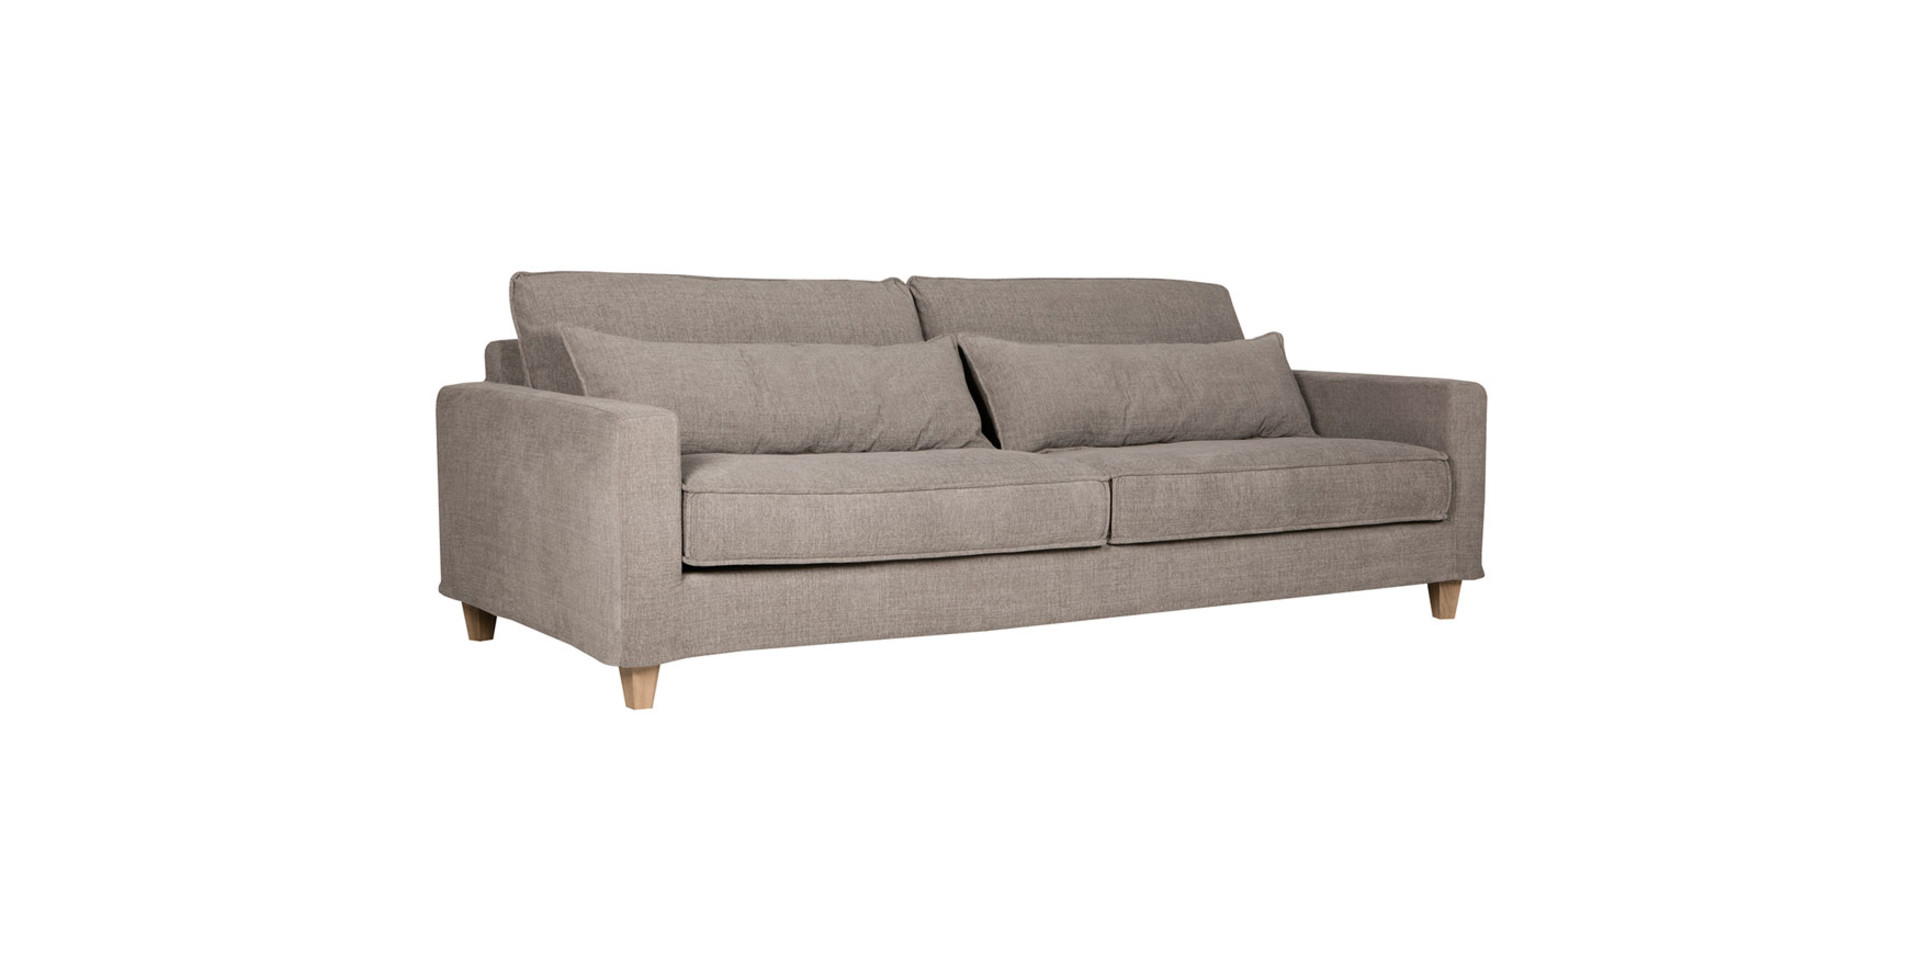 sits-malte-canape-3seater_yeti3_beige_2